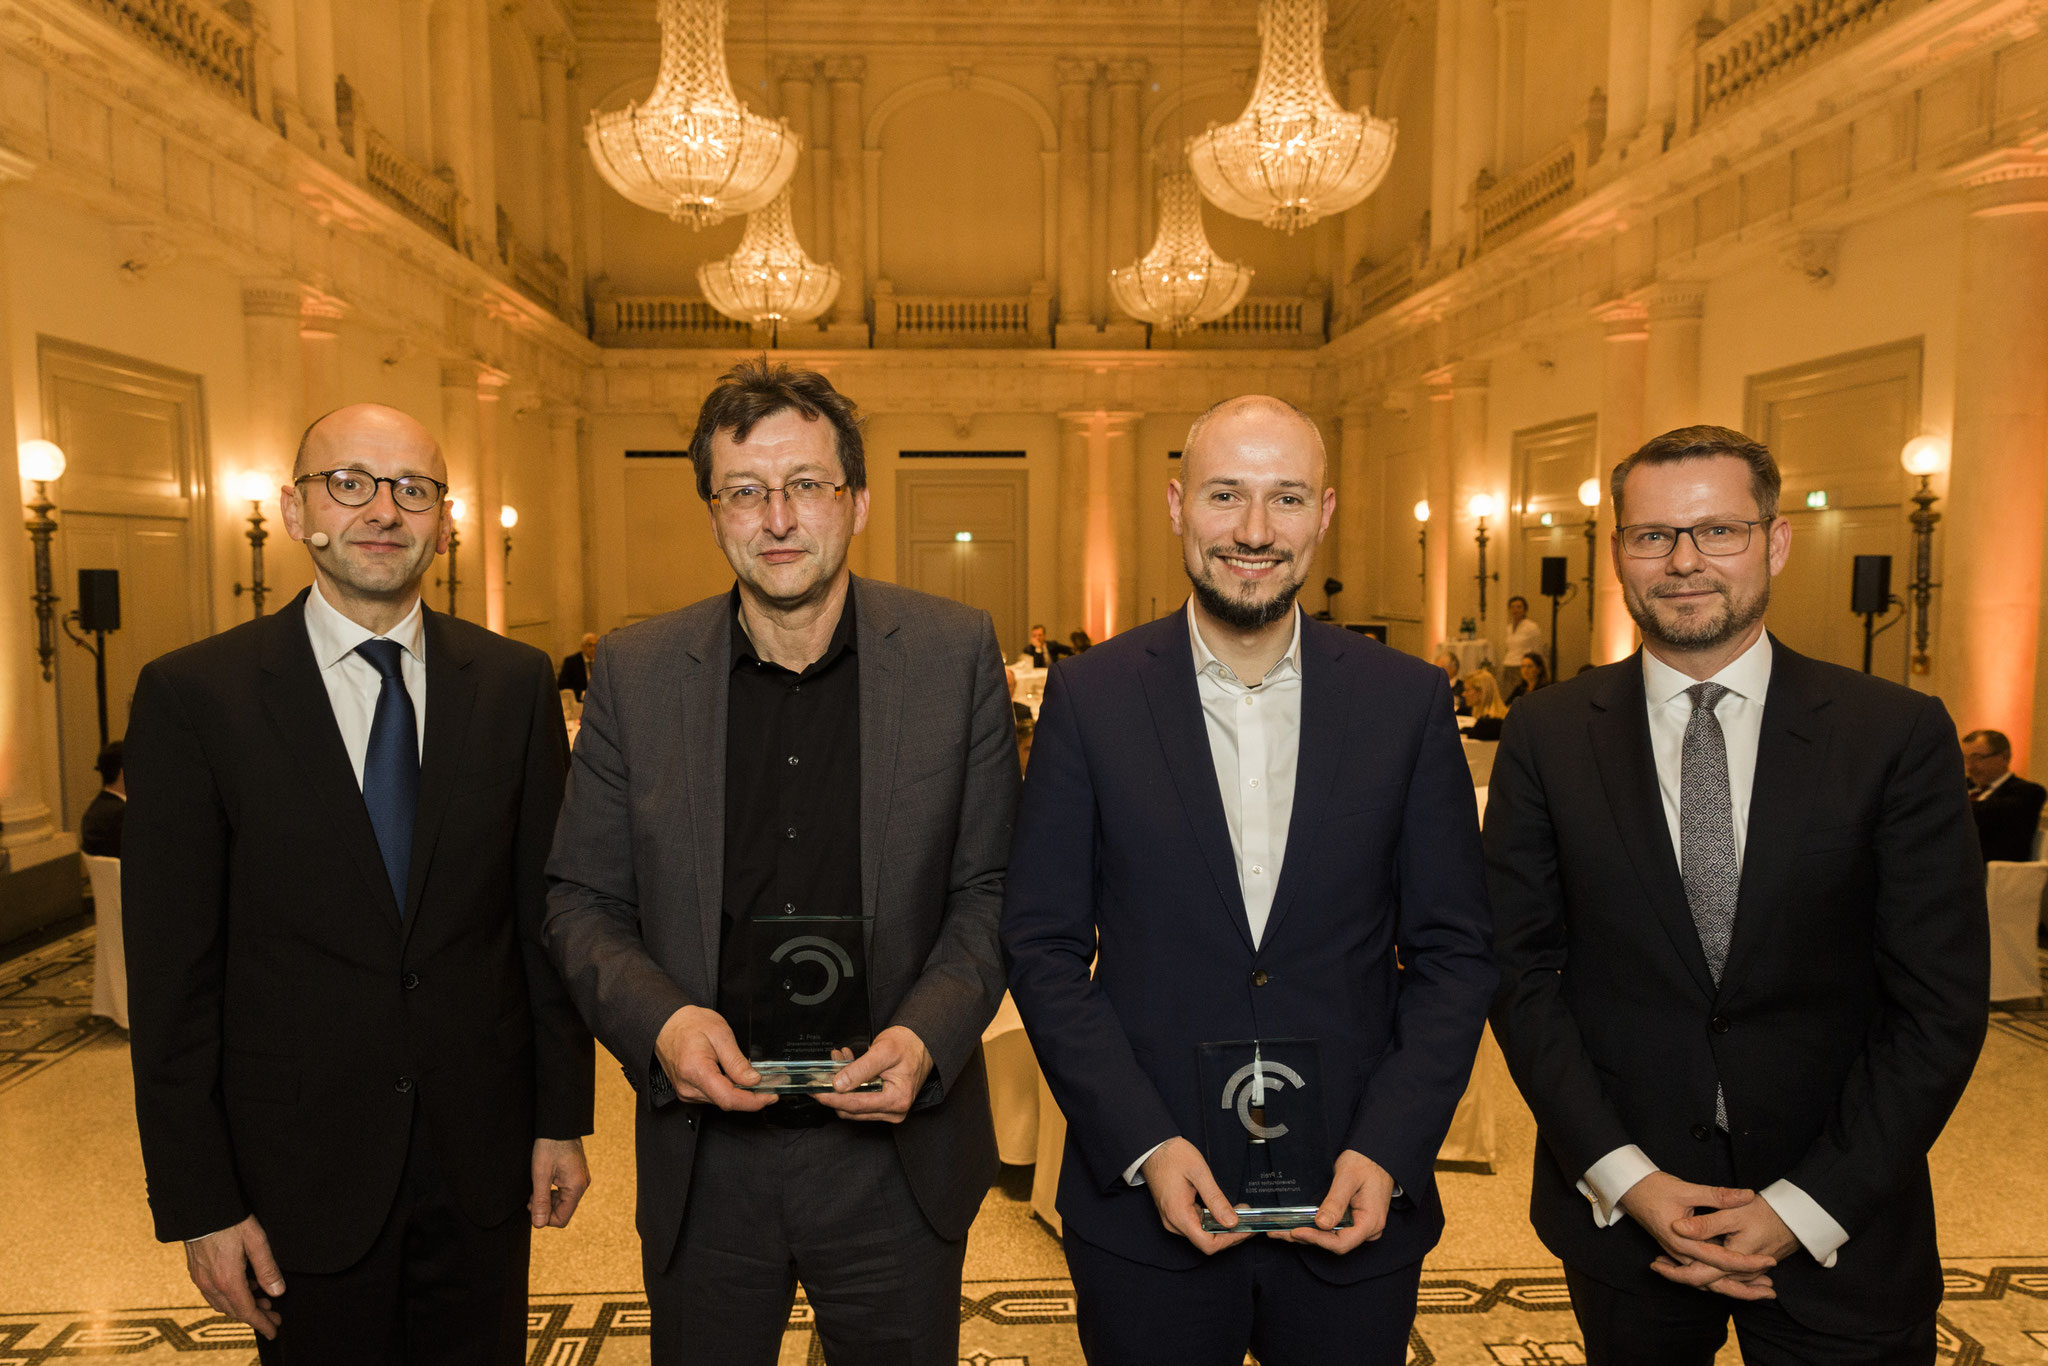 Lucas Flöther, Martin-Werner Buchenau, Anis Micijevic, second prize Journalism Award, Dirk Andres © 2018 Sven Döring